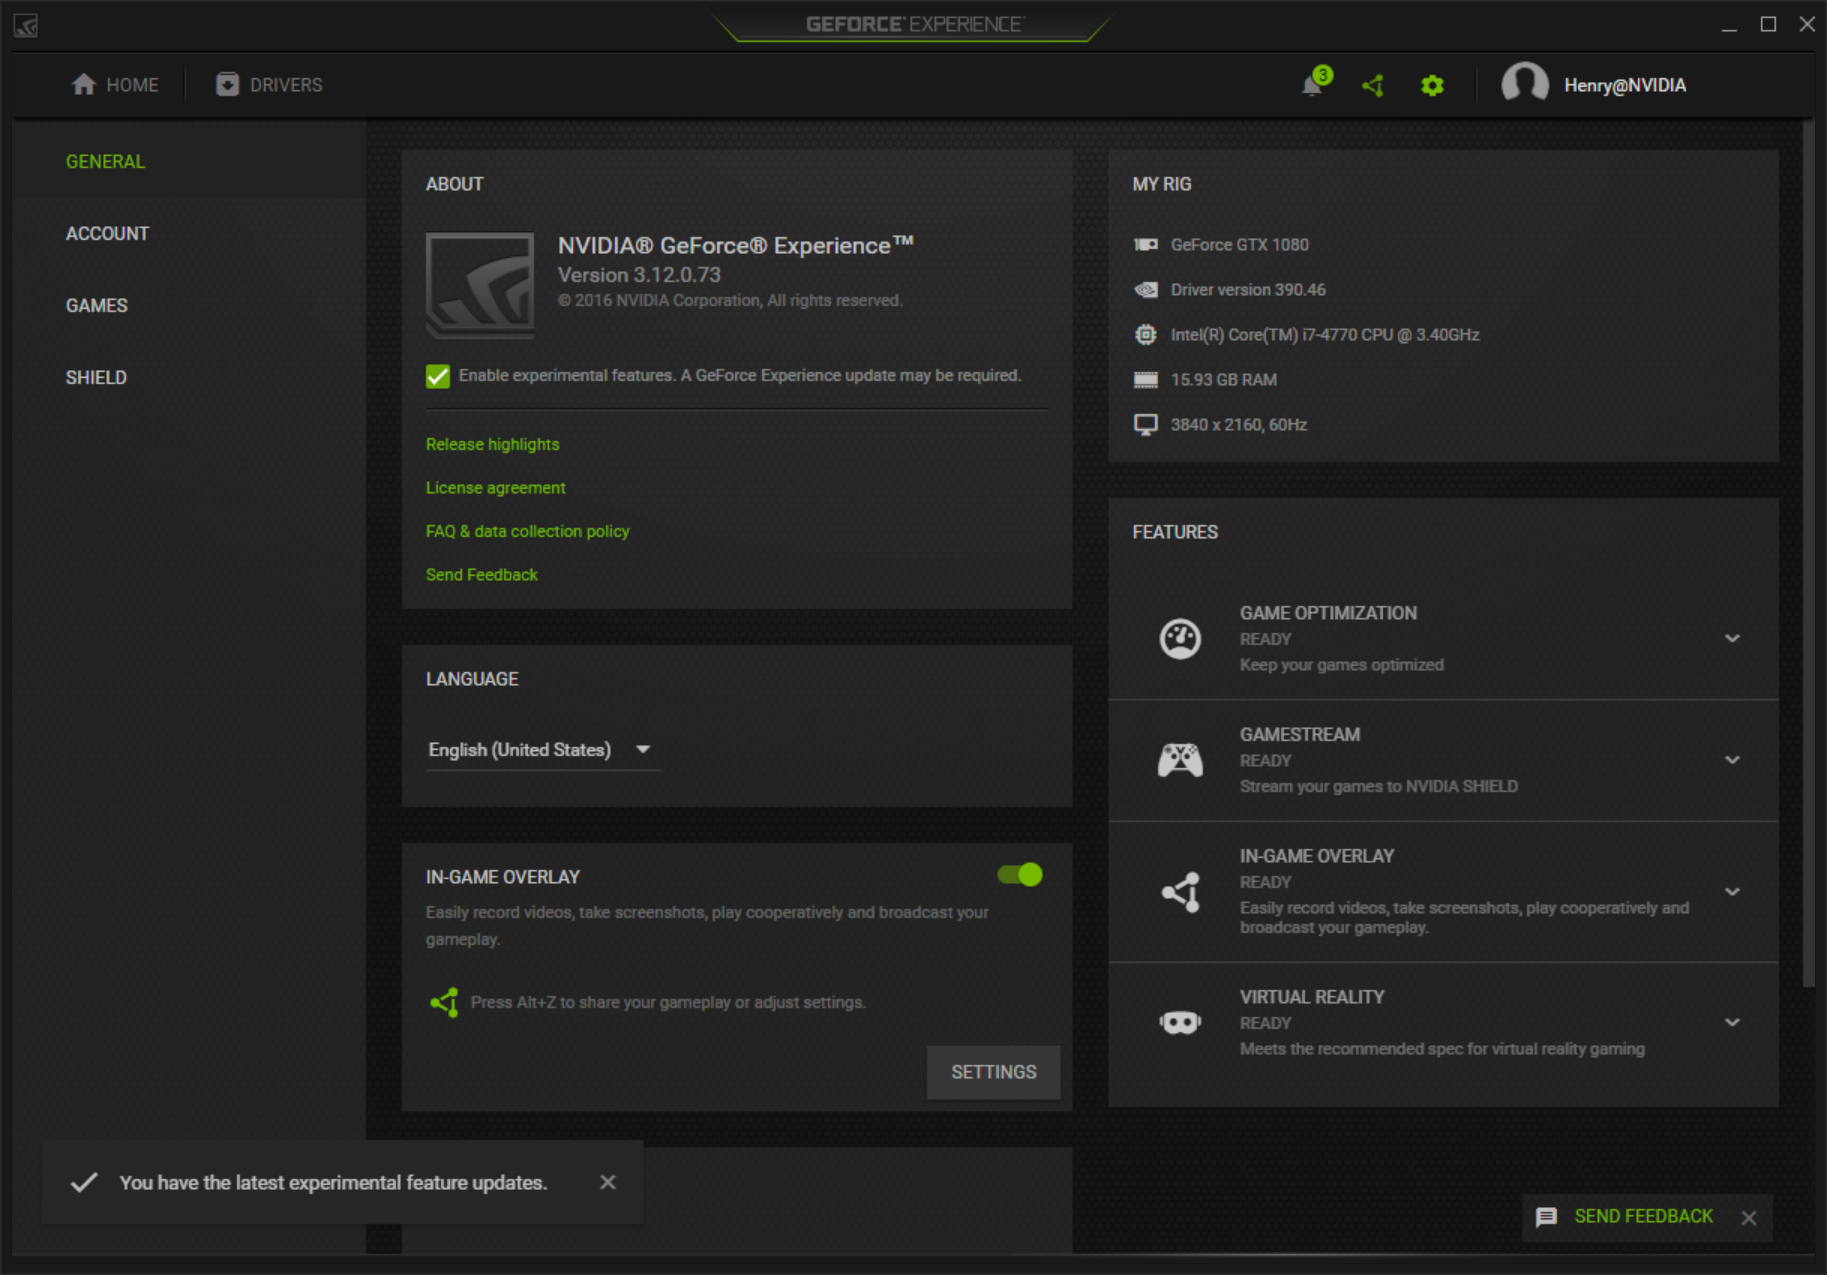 NVIDIA Freestyle: Customize A Game's Look In Real-Time